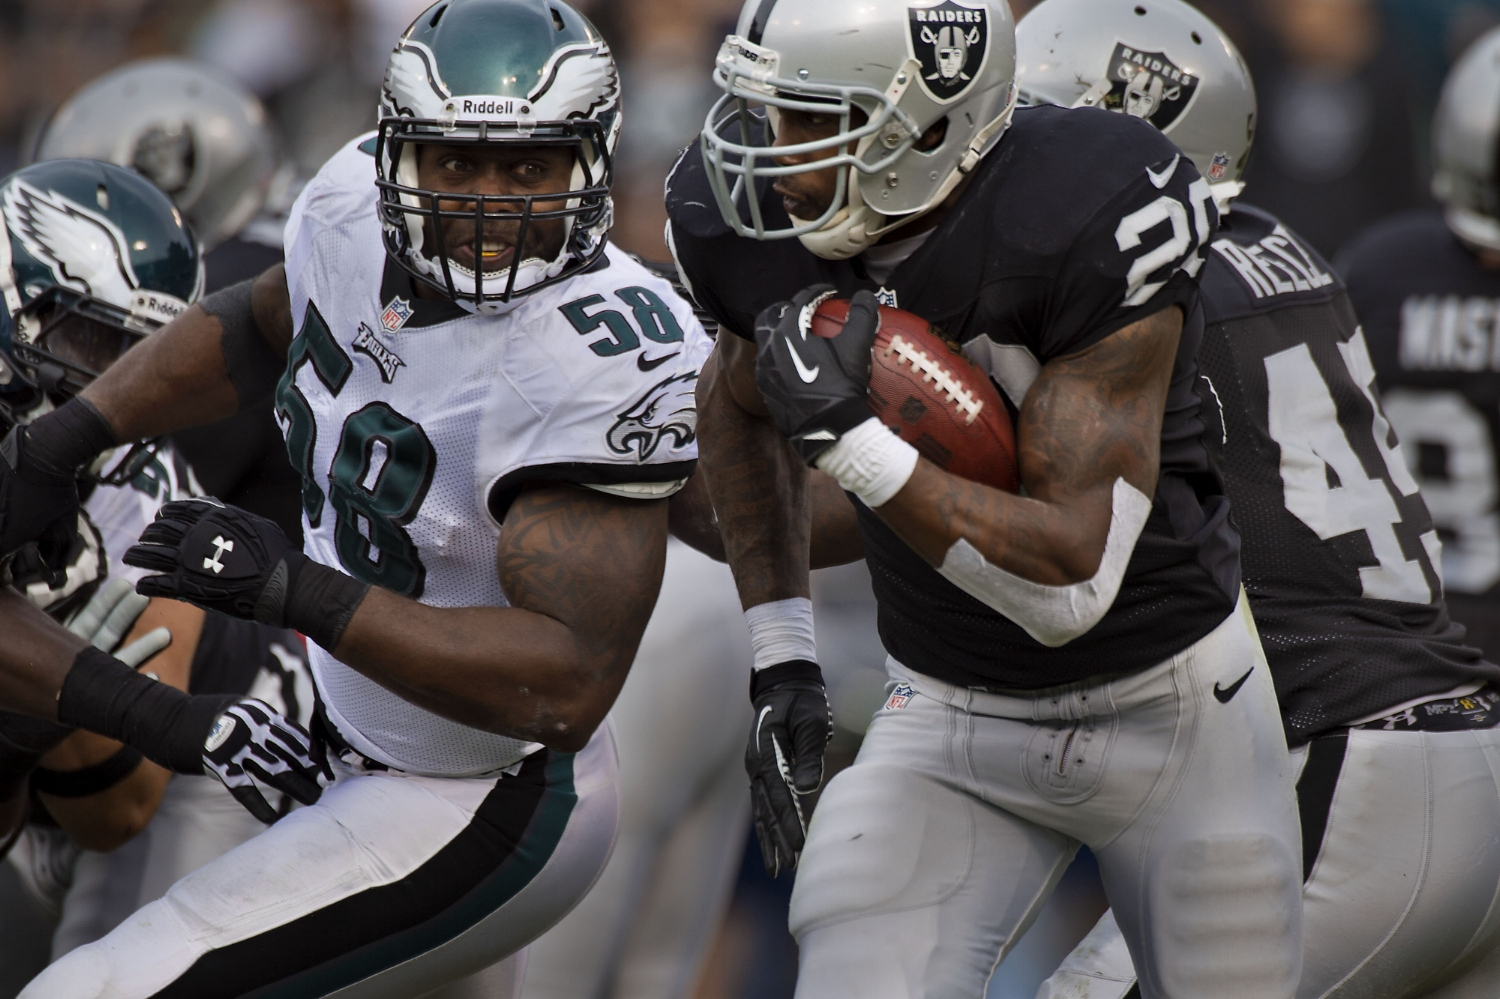 Raiders running back Darren McFadden (20) runs past Eagles outside linebacker Trent Cole (58) during the game between the Oakland Raiders and the Philadelphia Eagles at O.co Coliseum in Oakland on Sunday, November 3, 2013.